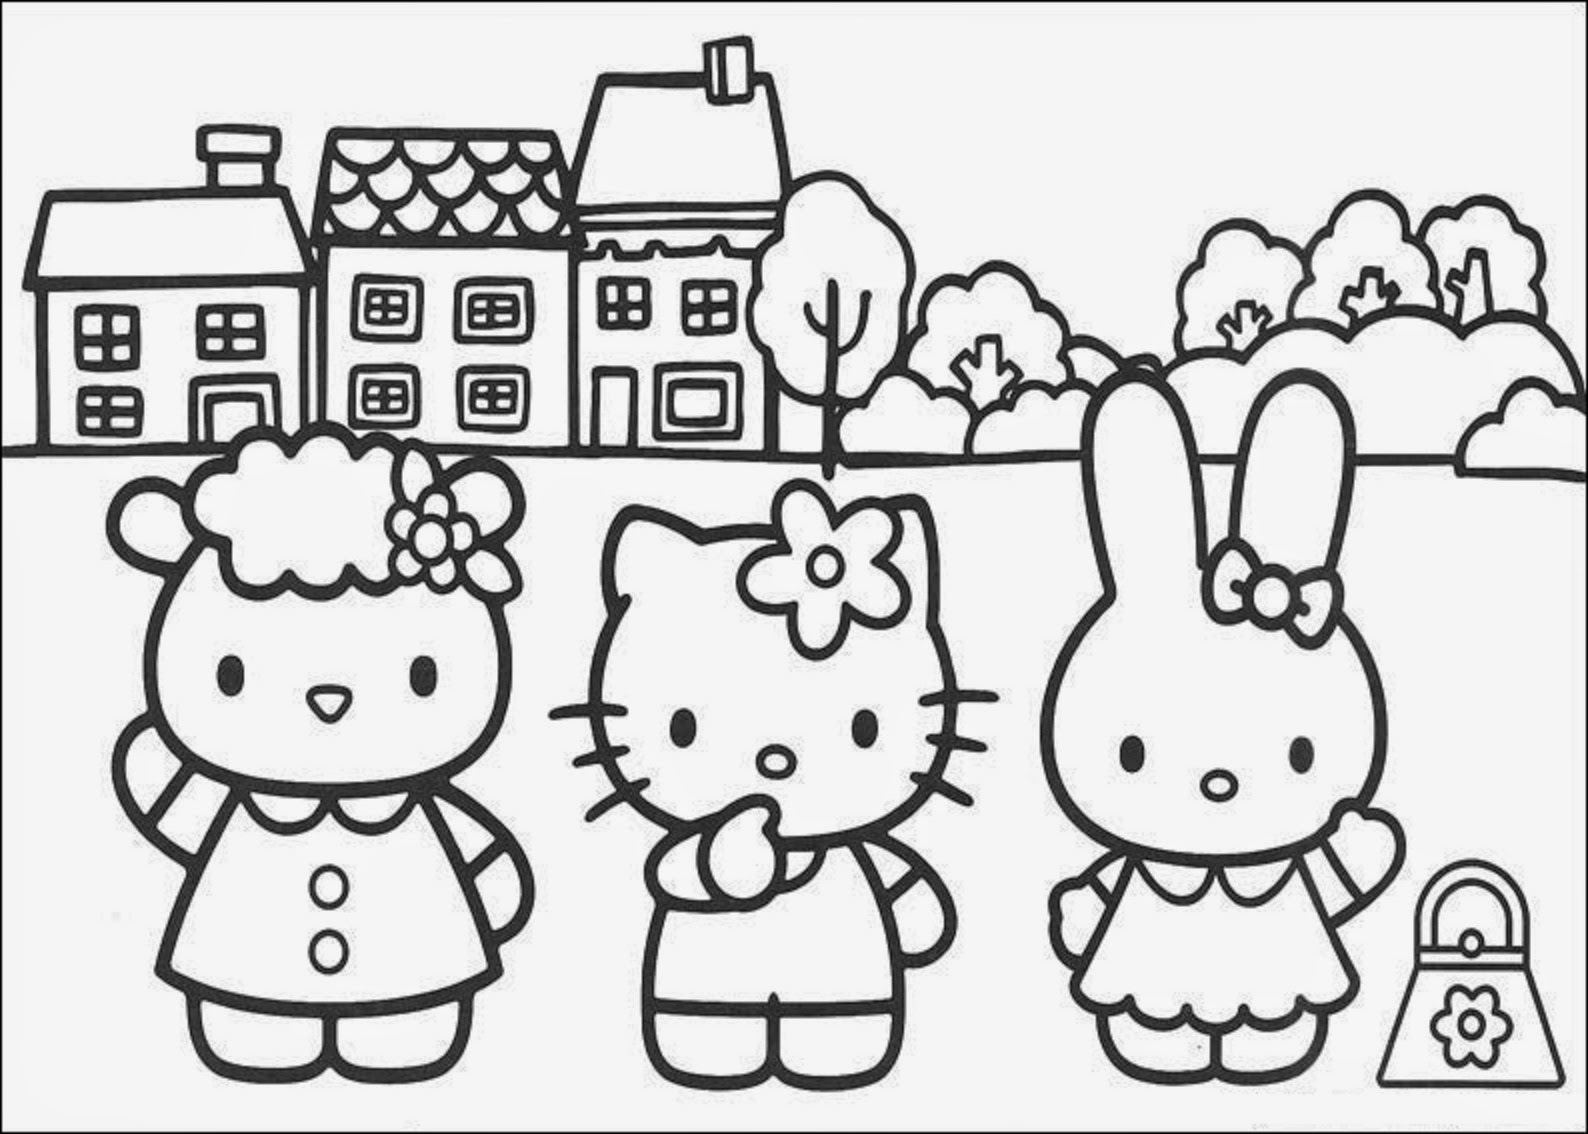 Coloring Pages Baby Hello Kitty Coloring Pages 20 free printable hello kitty coloring pages fit to print